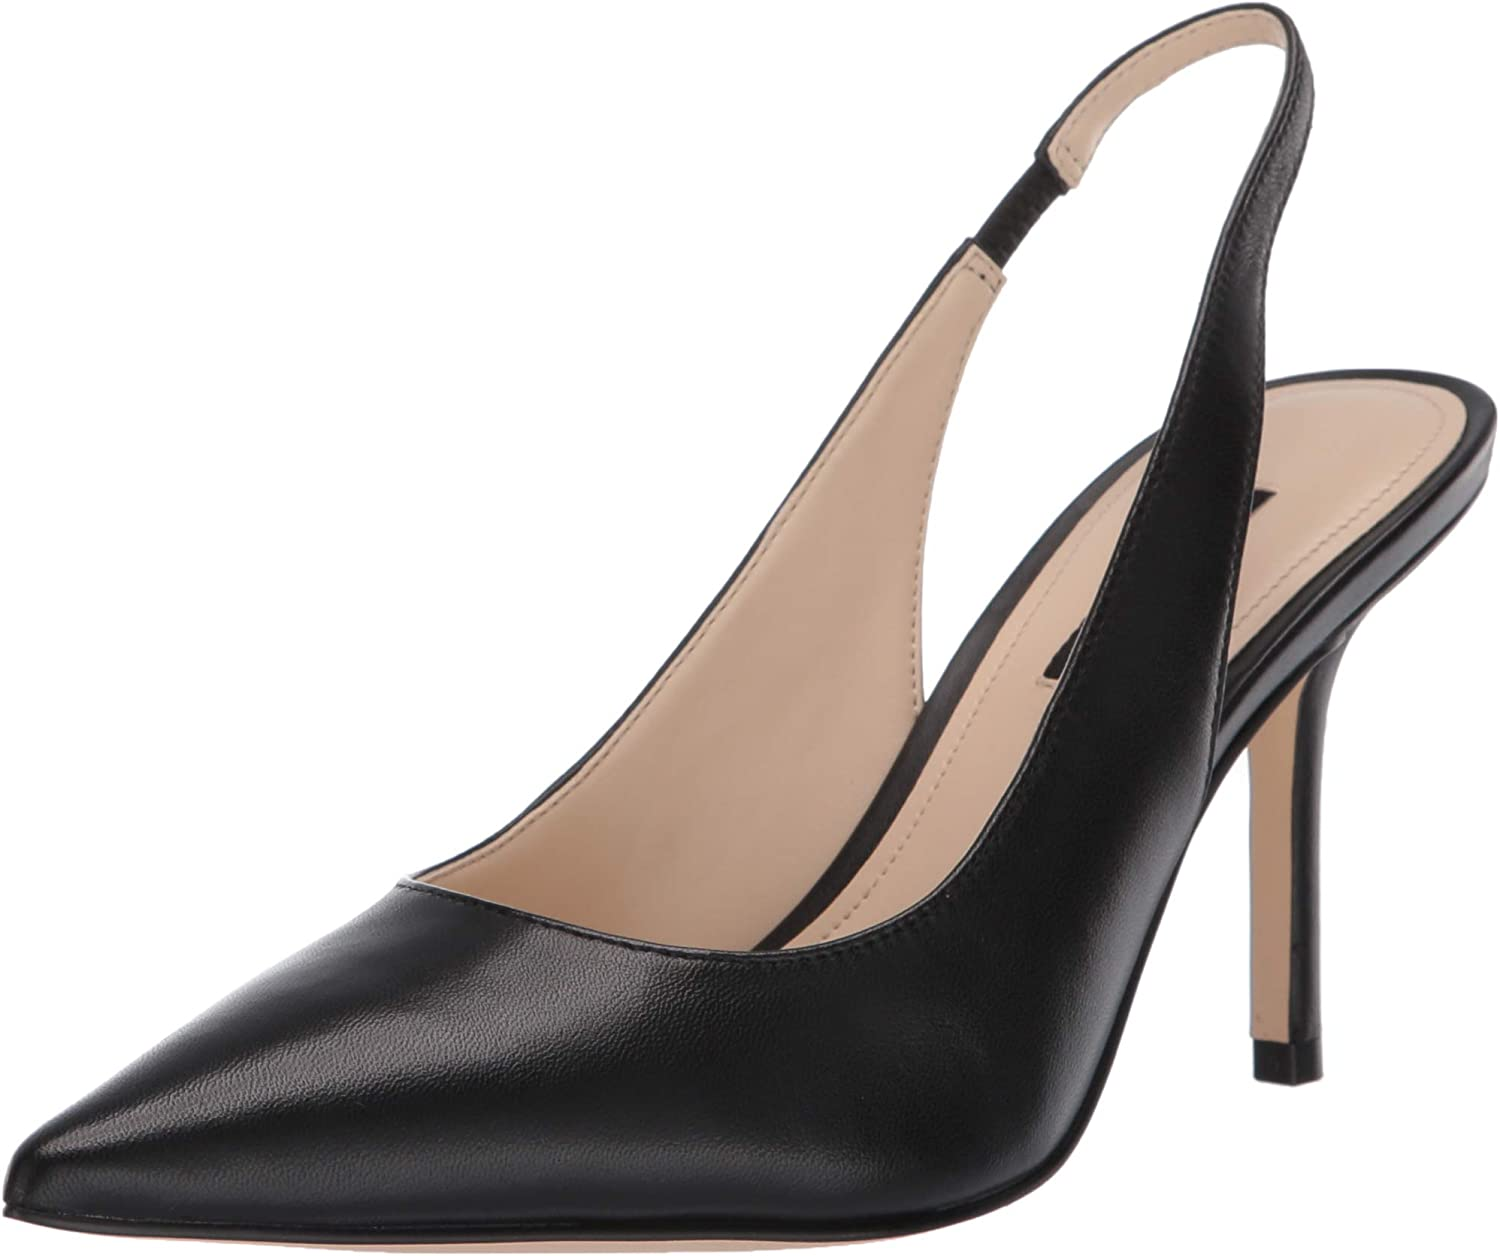 NINE WEST Women's Wnholly Pump